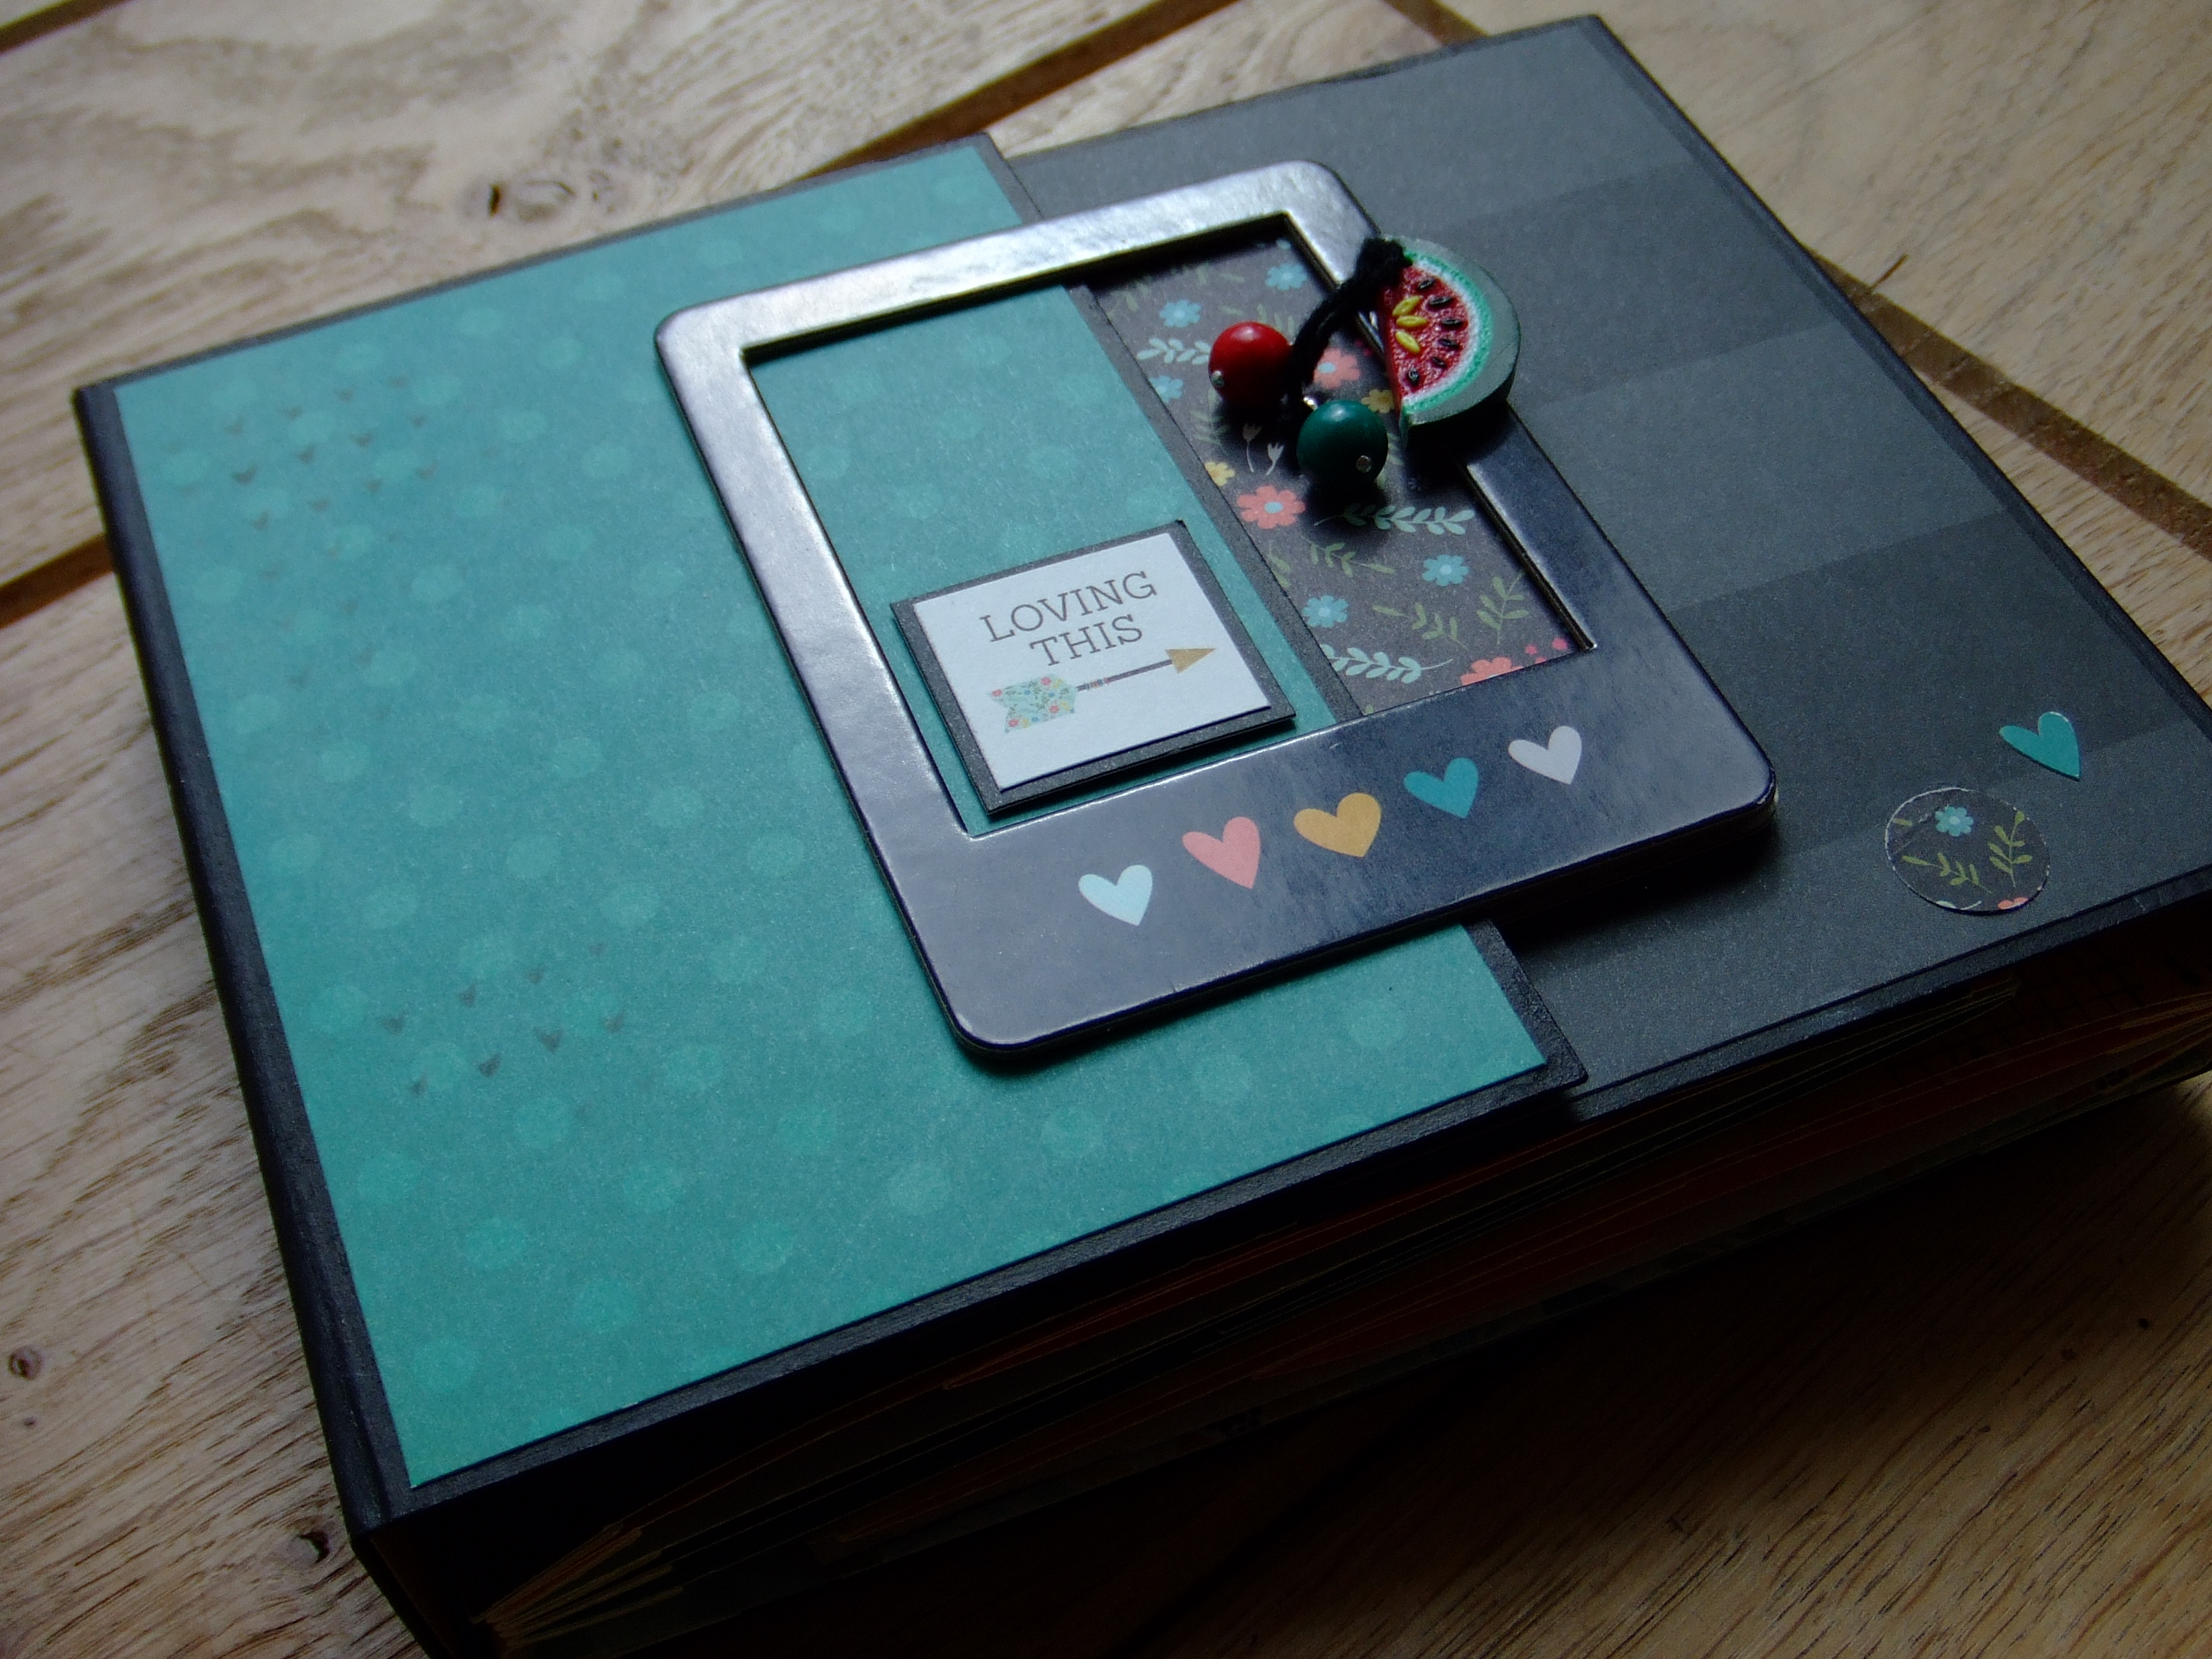 Projet d'atelier Loving This mini-album scrap scrapbooking couleurs-en-folie tuto tutoriel